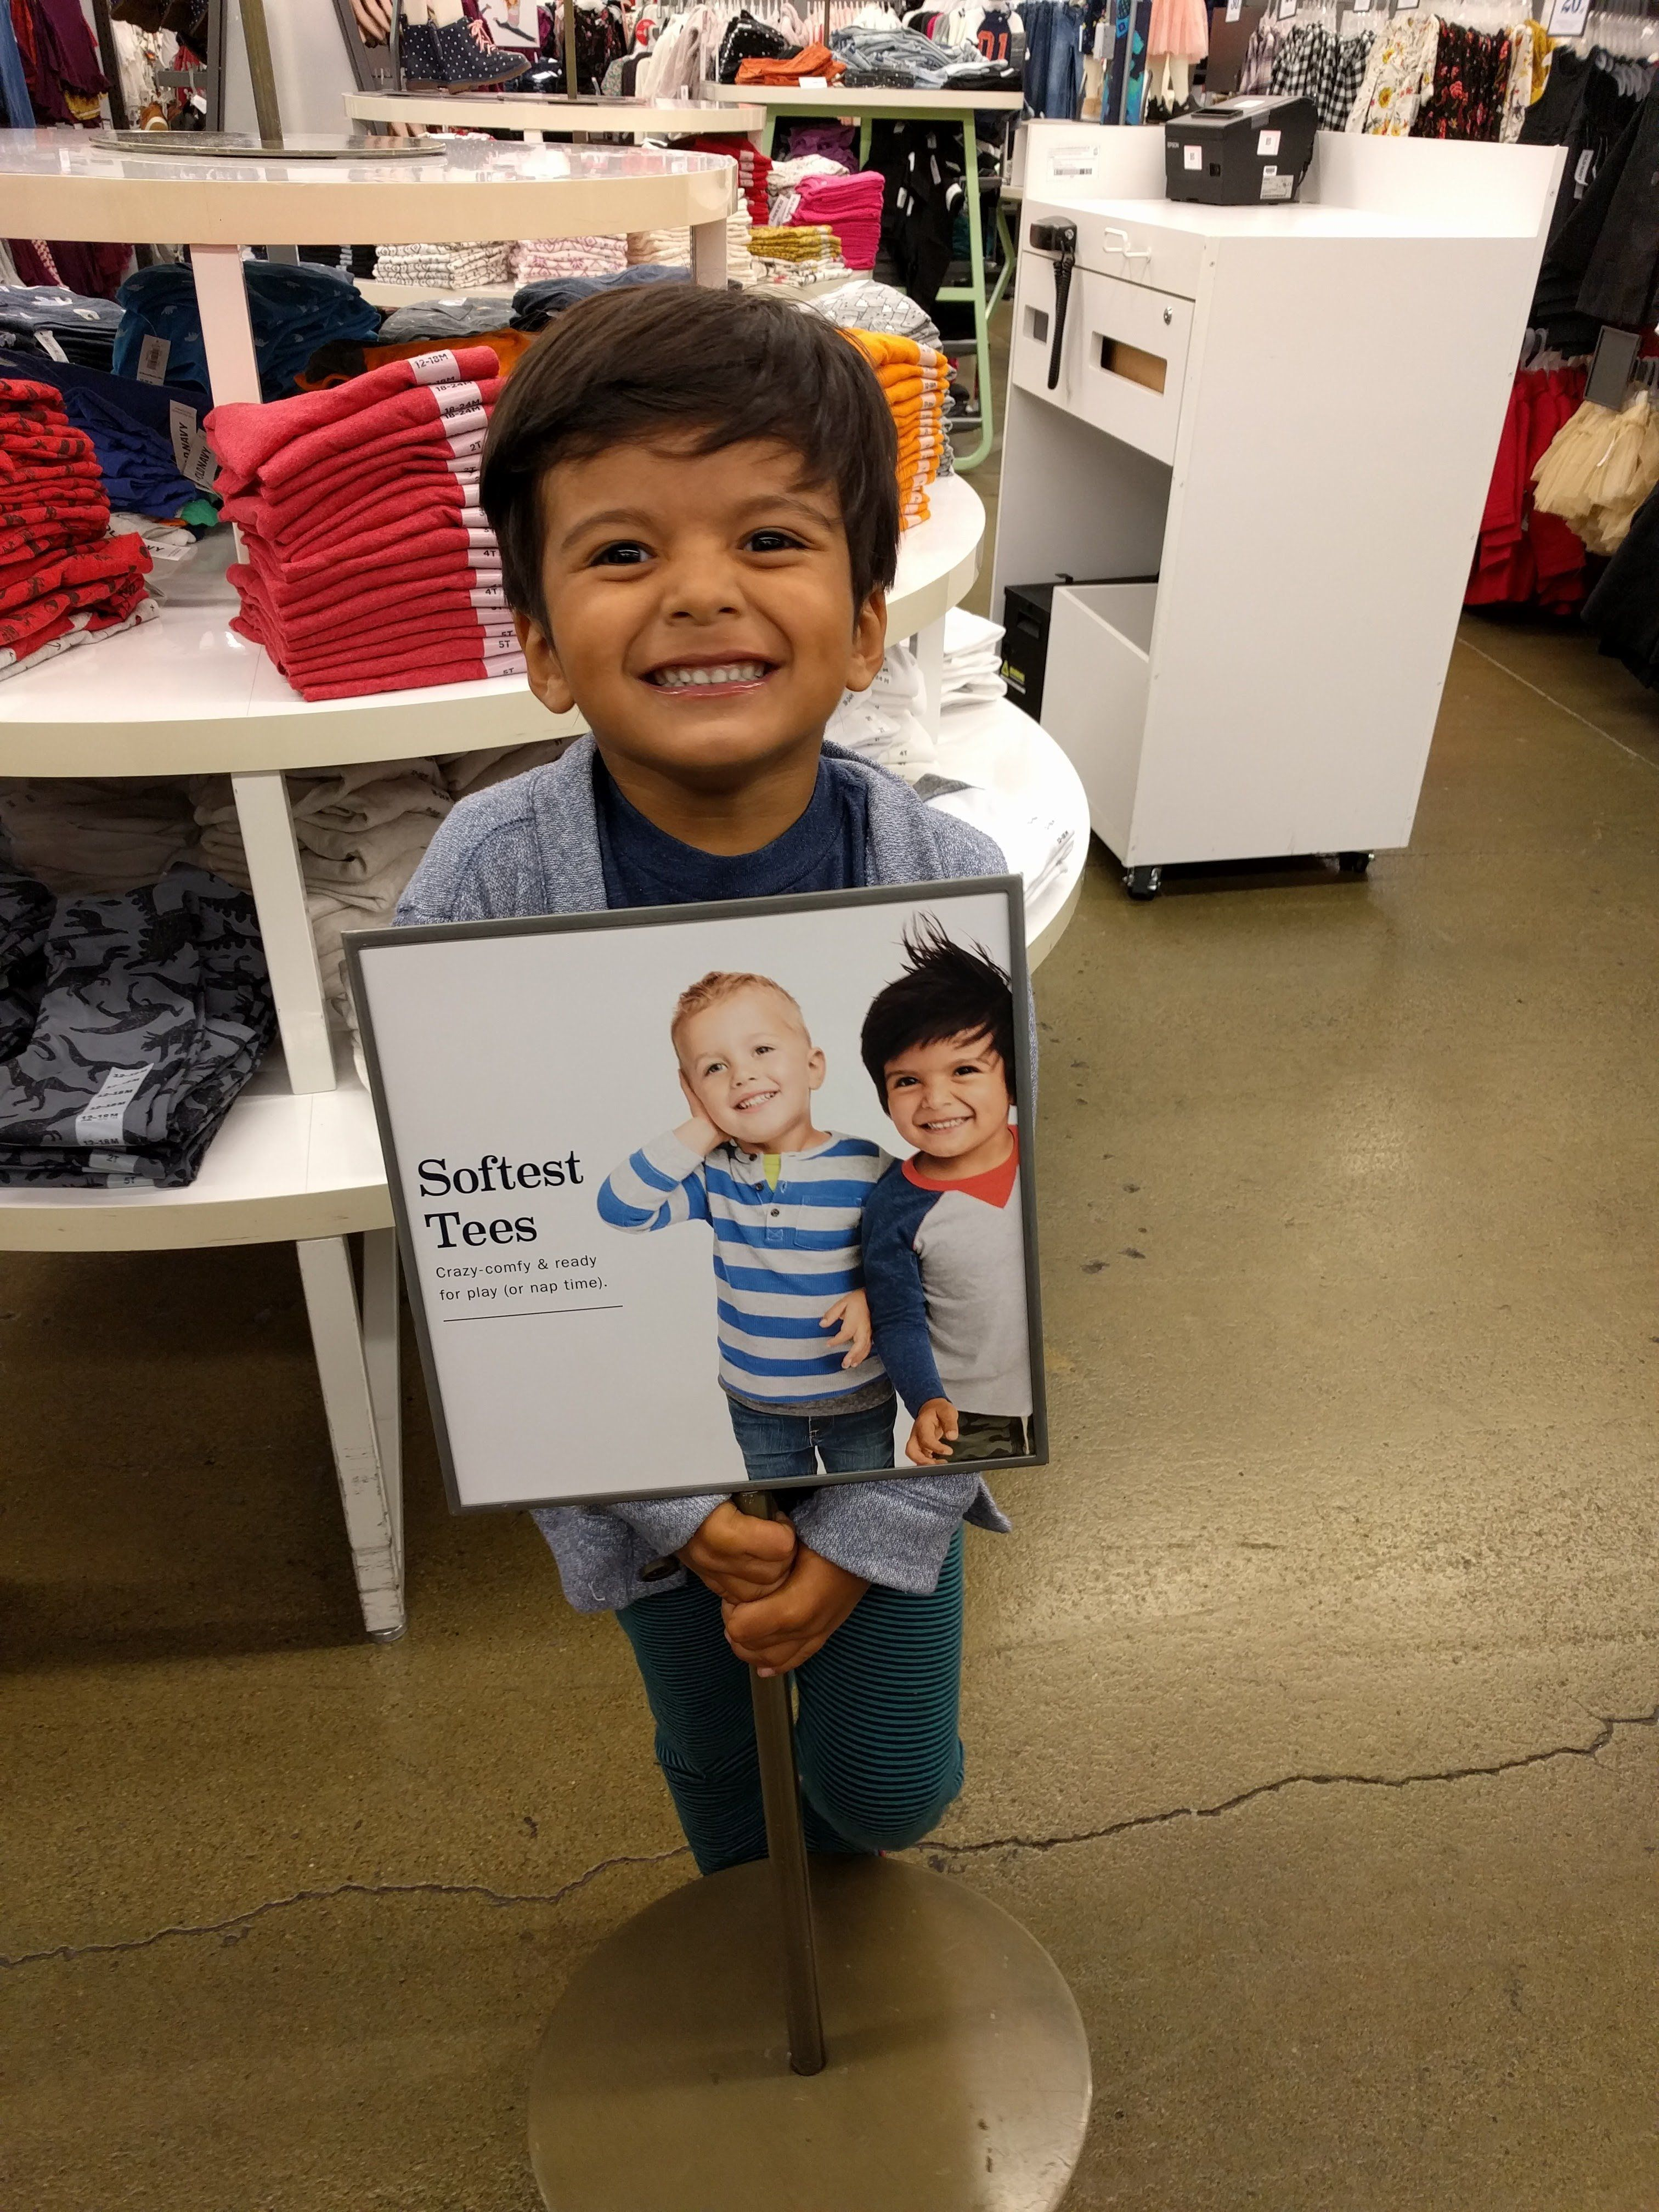 Standing next to his picture at Old Navy